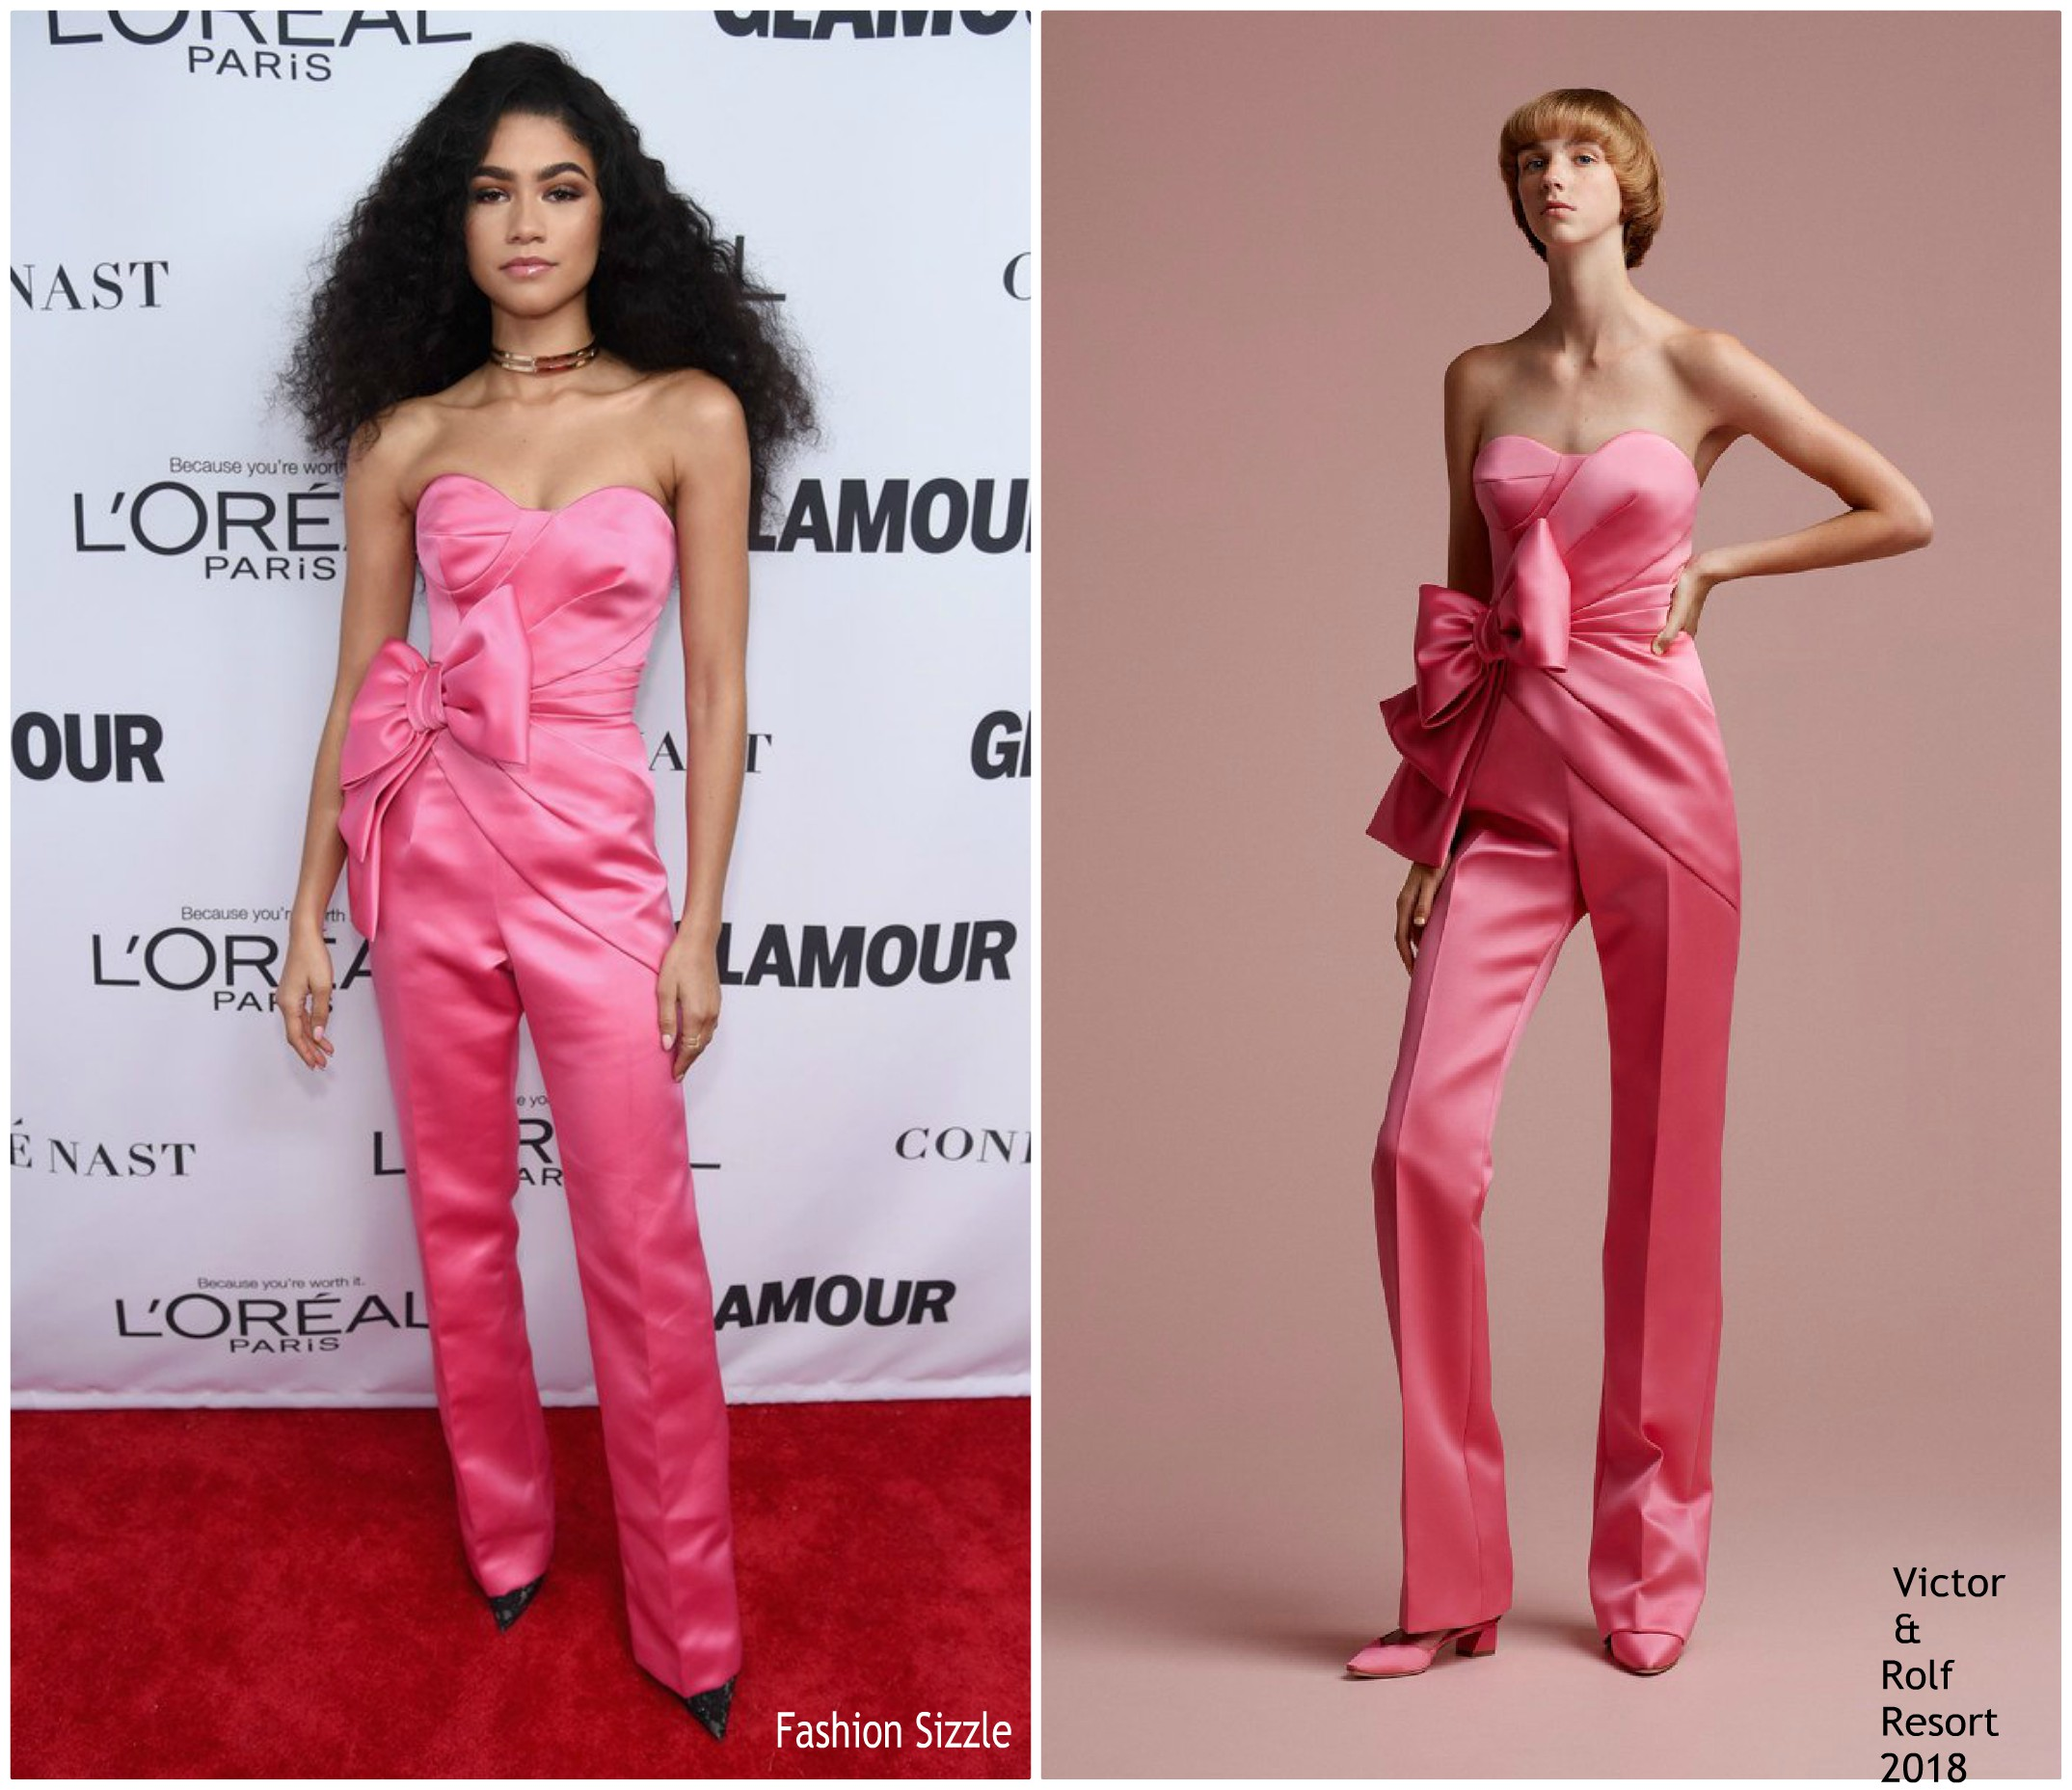 zendaya-coleman-in-victor-rolf-2017-glamour-women-of-the-year-awards